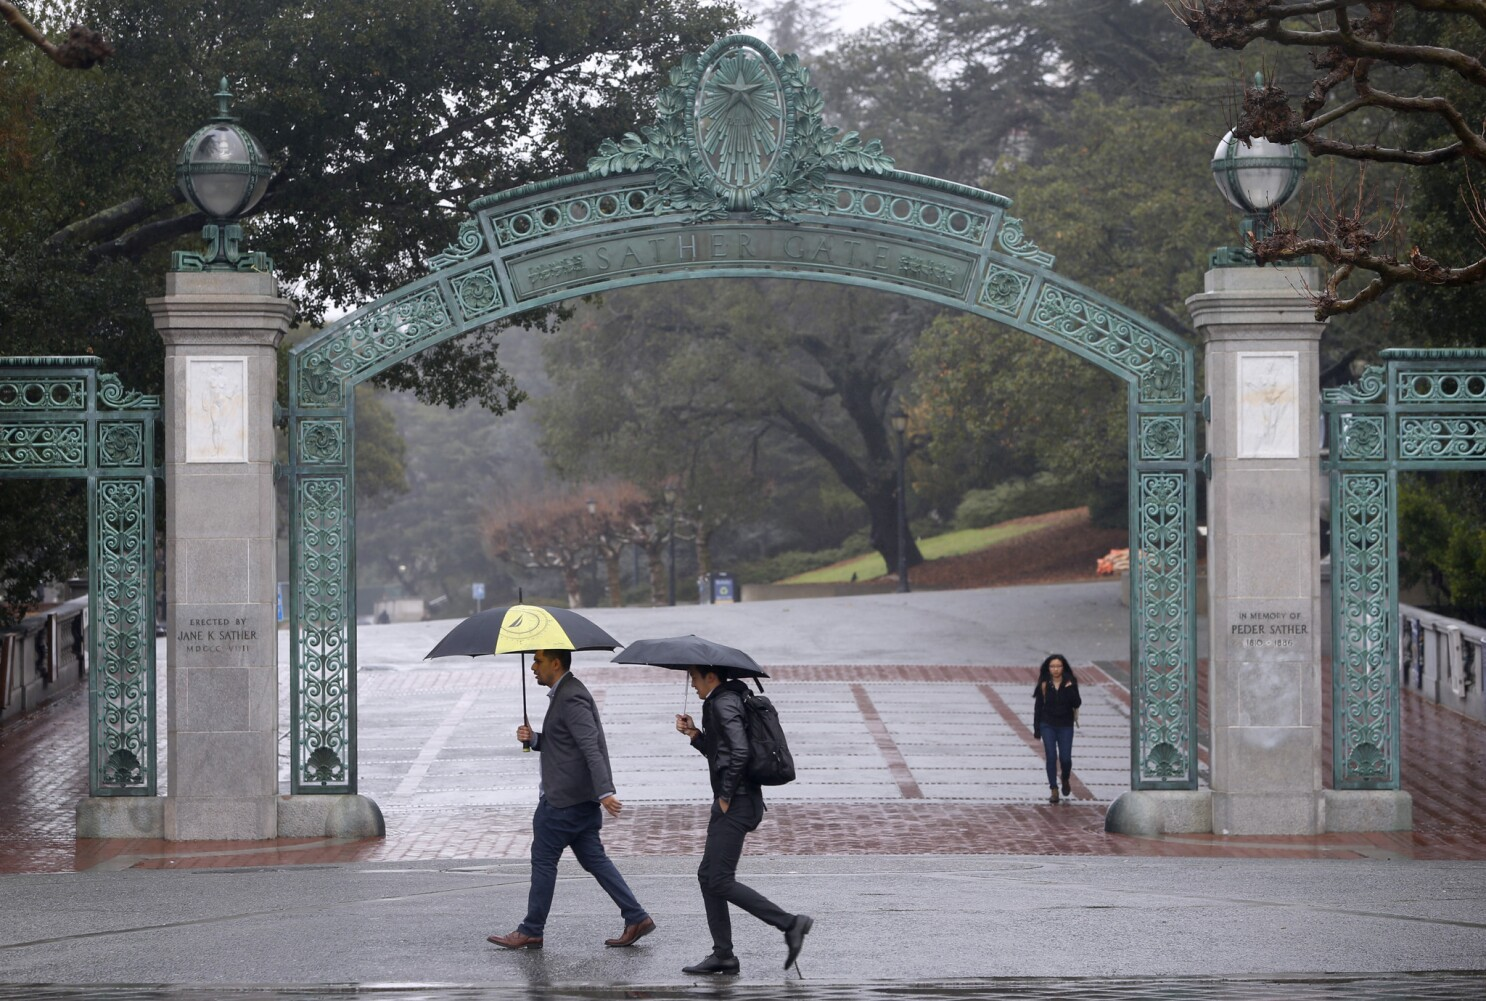 With money tight, chancellor says UC Berkeley must